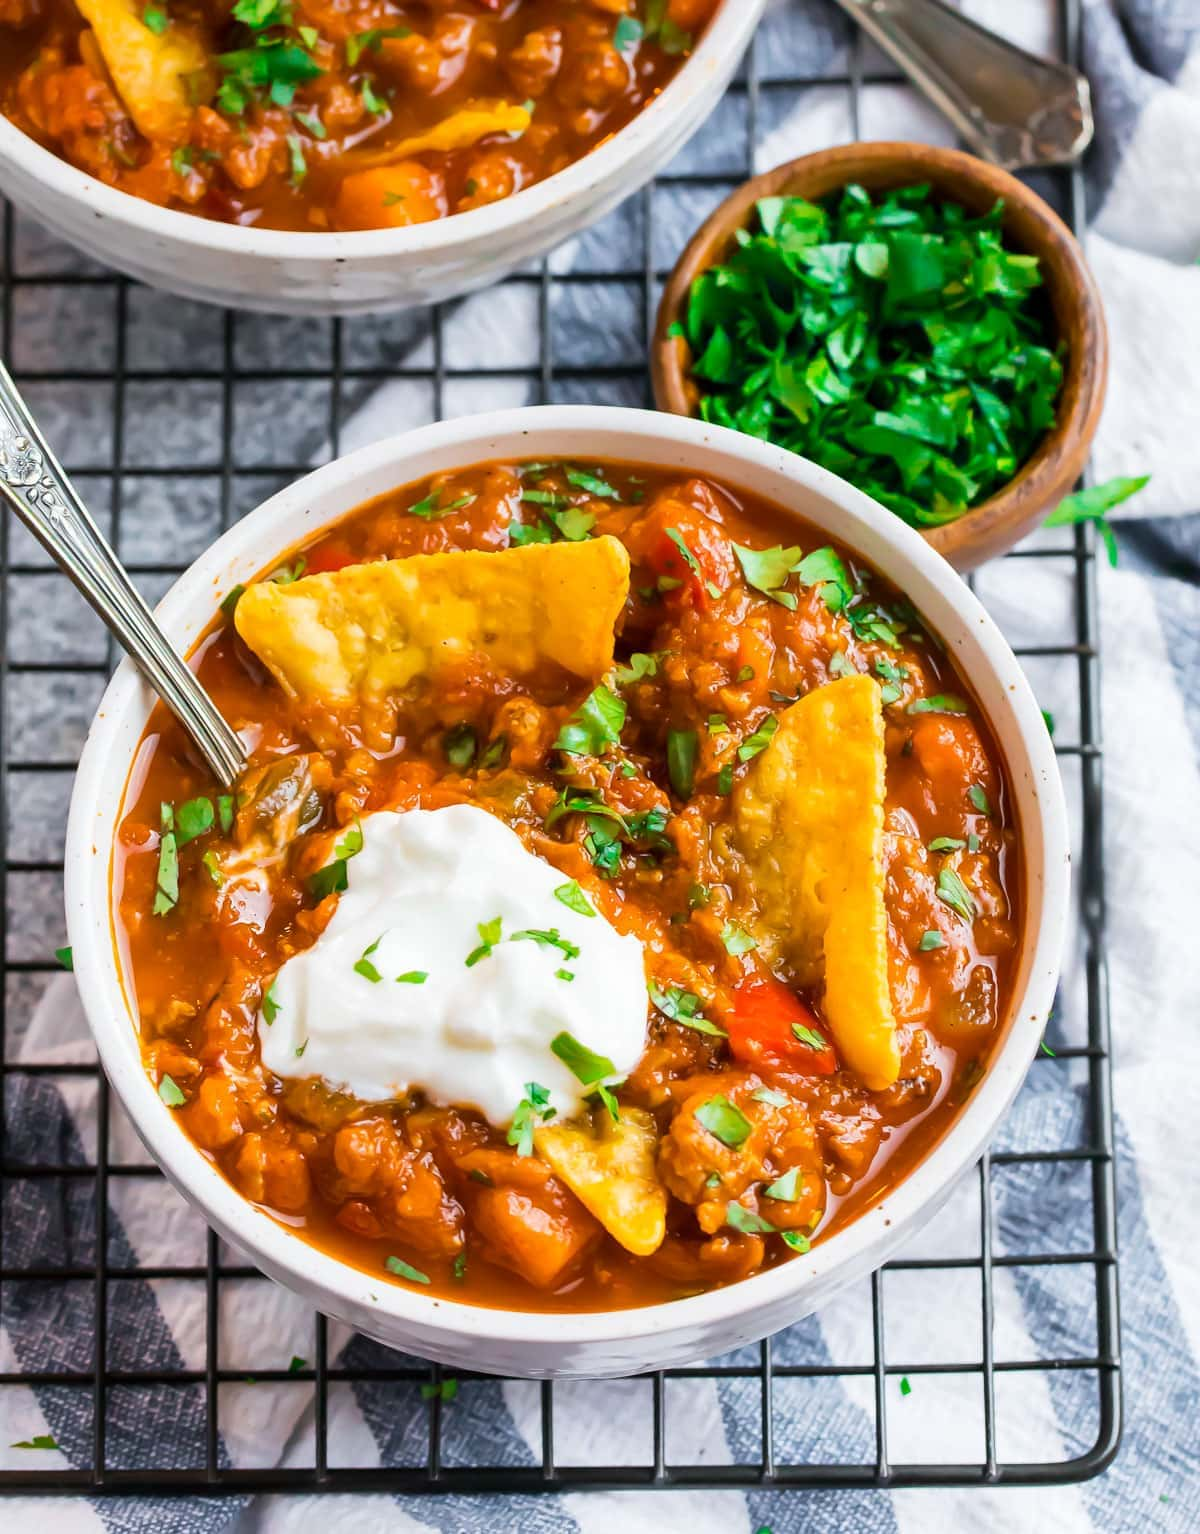 Pumpkin chili in a bowl with chips